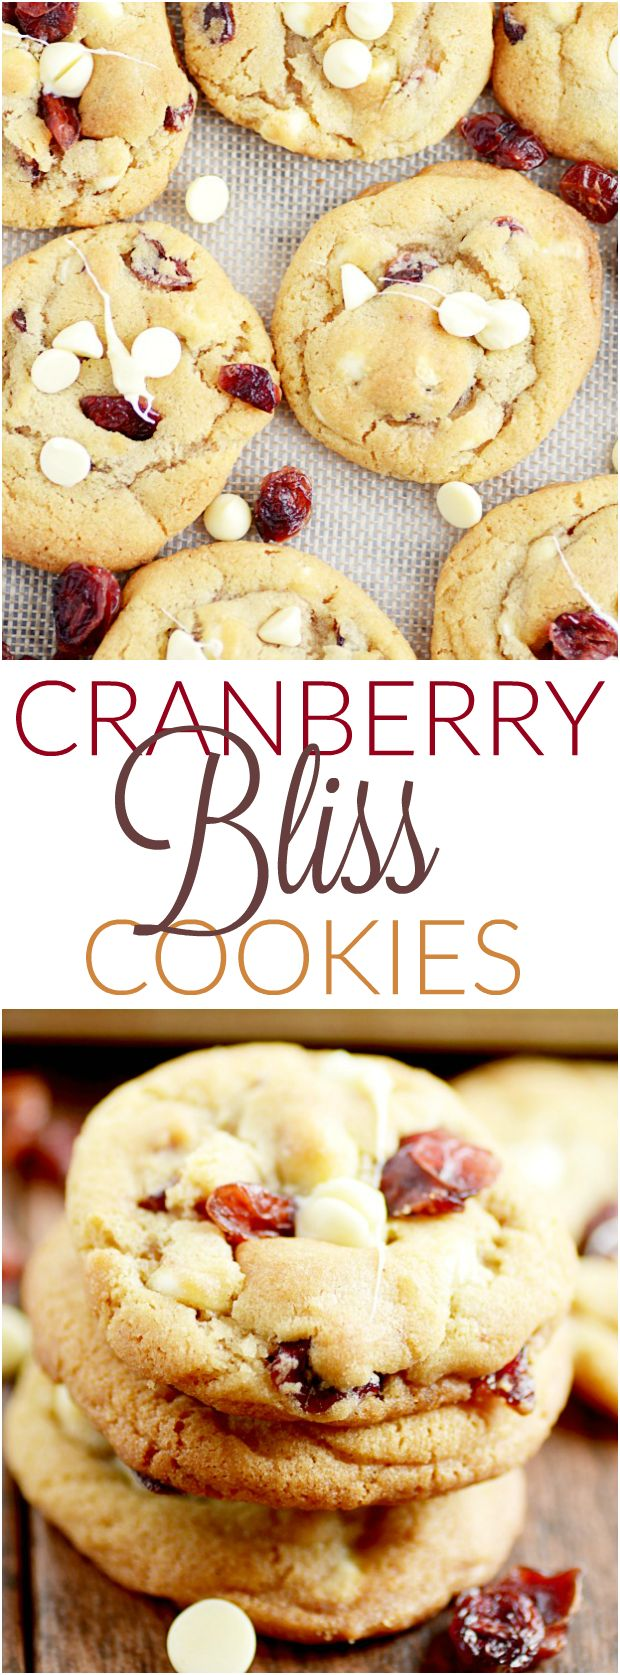 Cranberry Bliss Cookies, a simplified copycat of Starbucks!